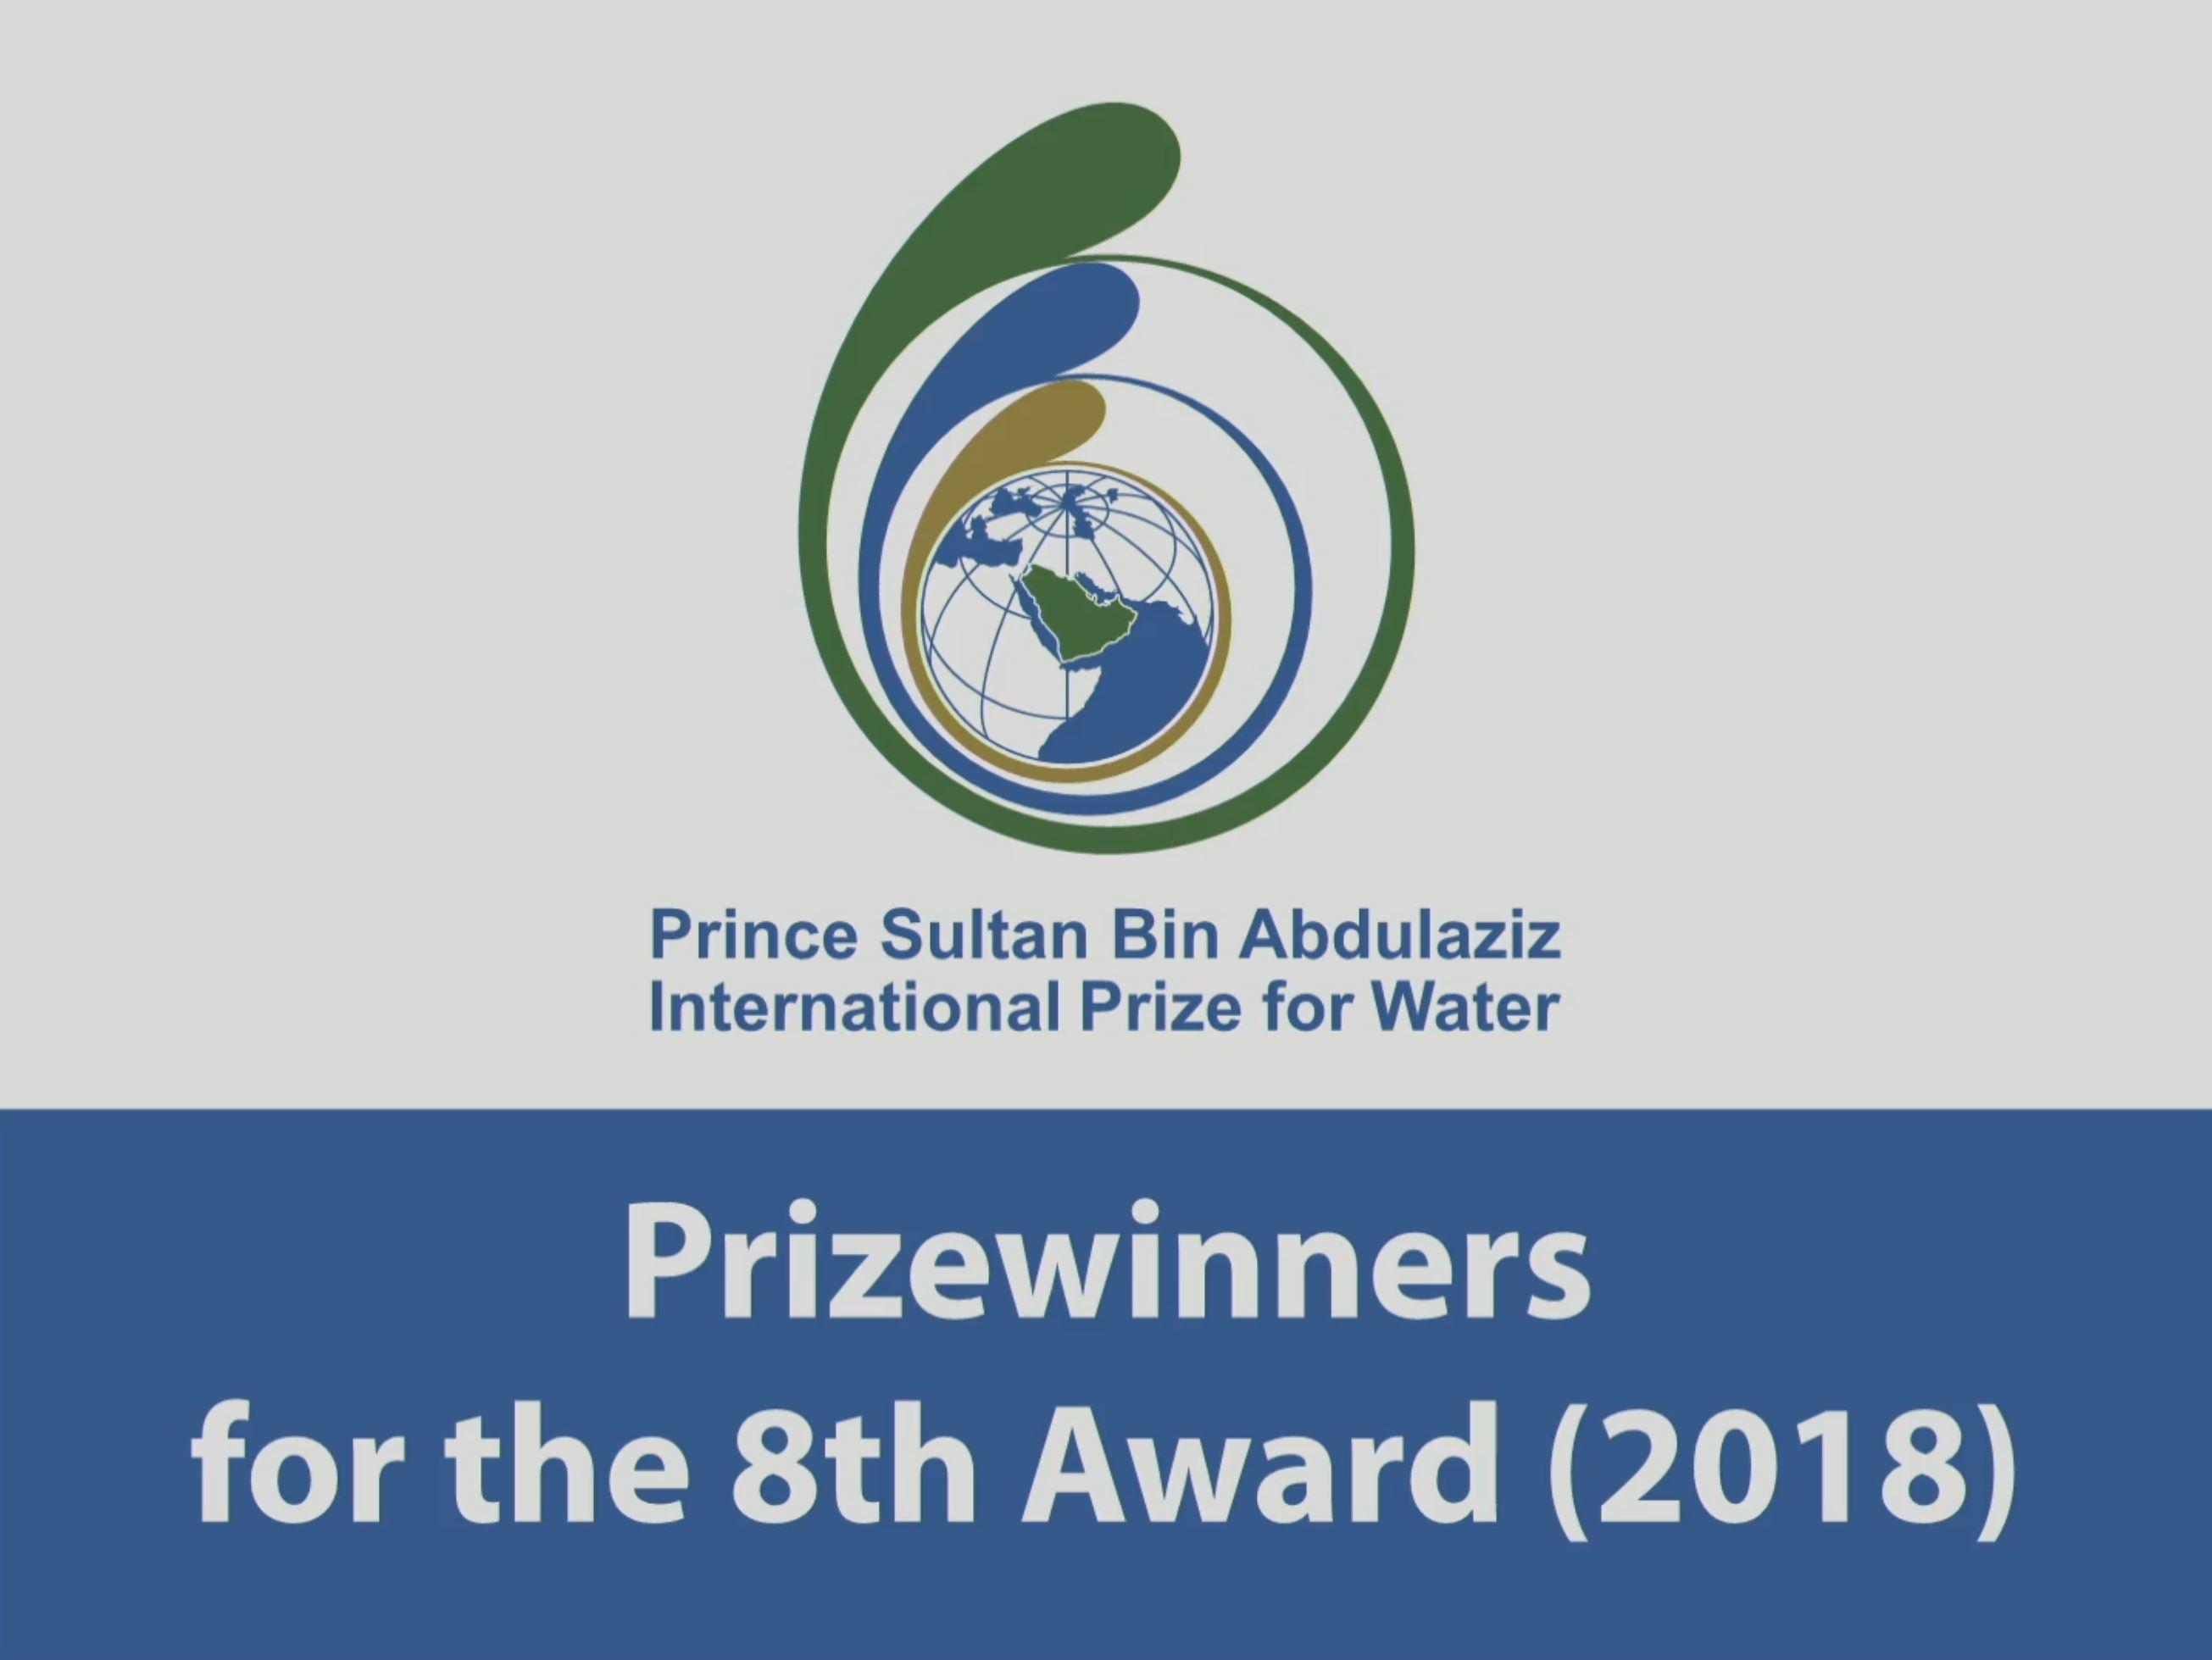 Announcement of pricewinners for the 8th Award (2018)